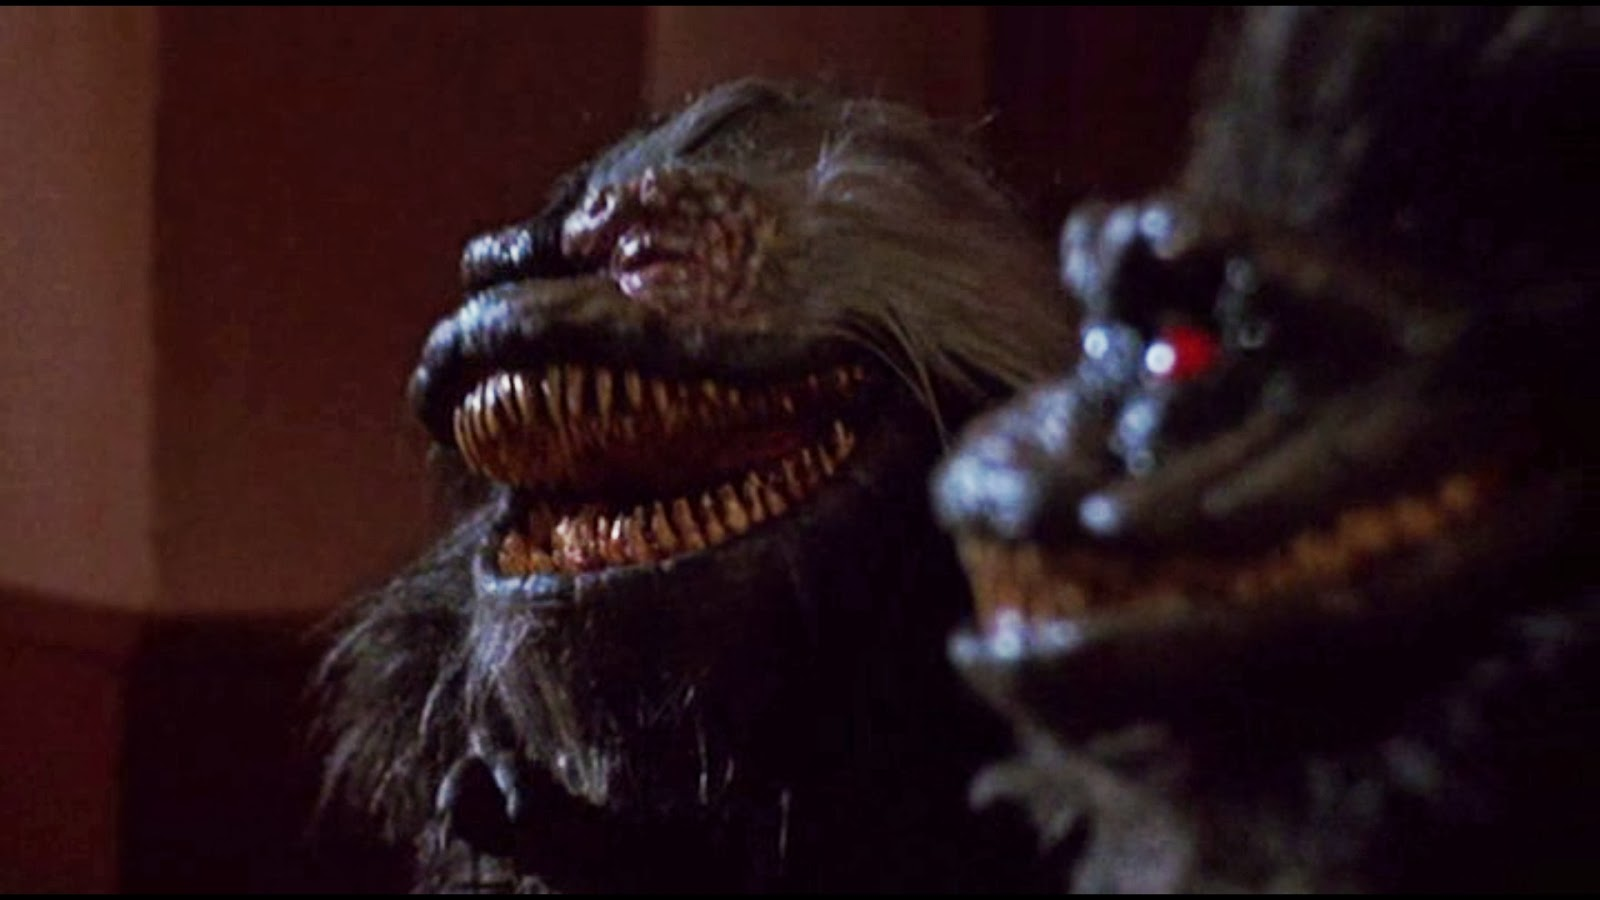 The Critters in Critters 3